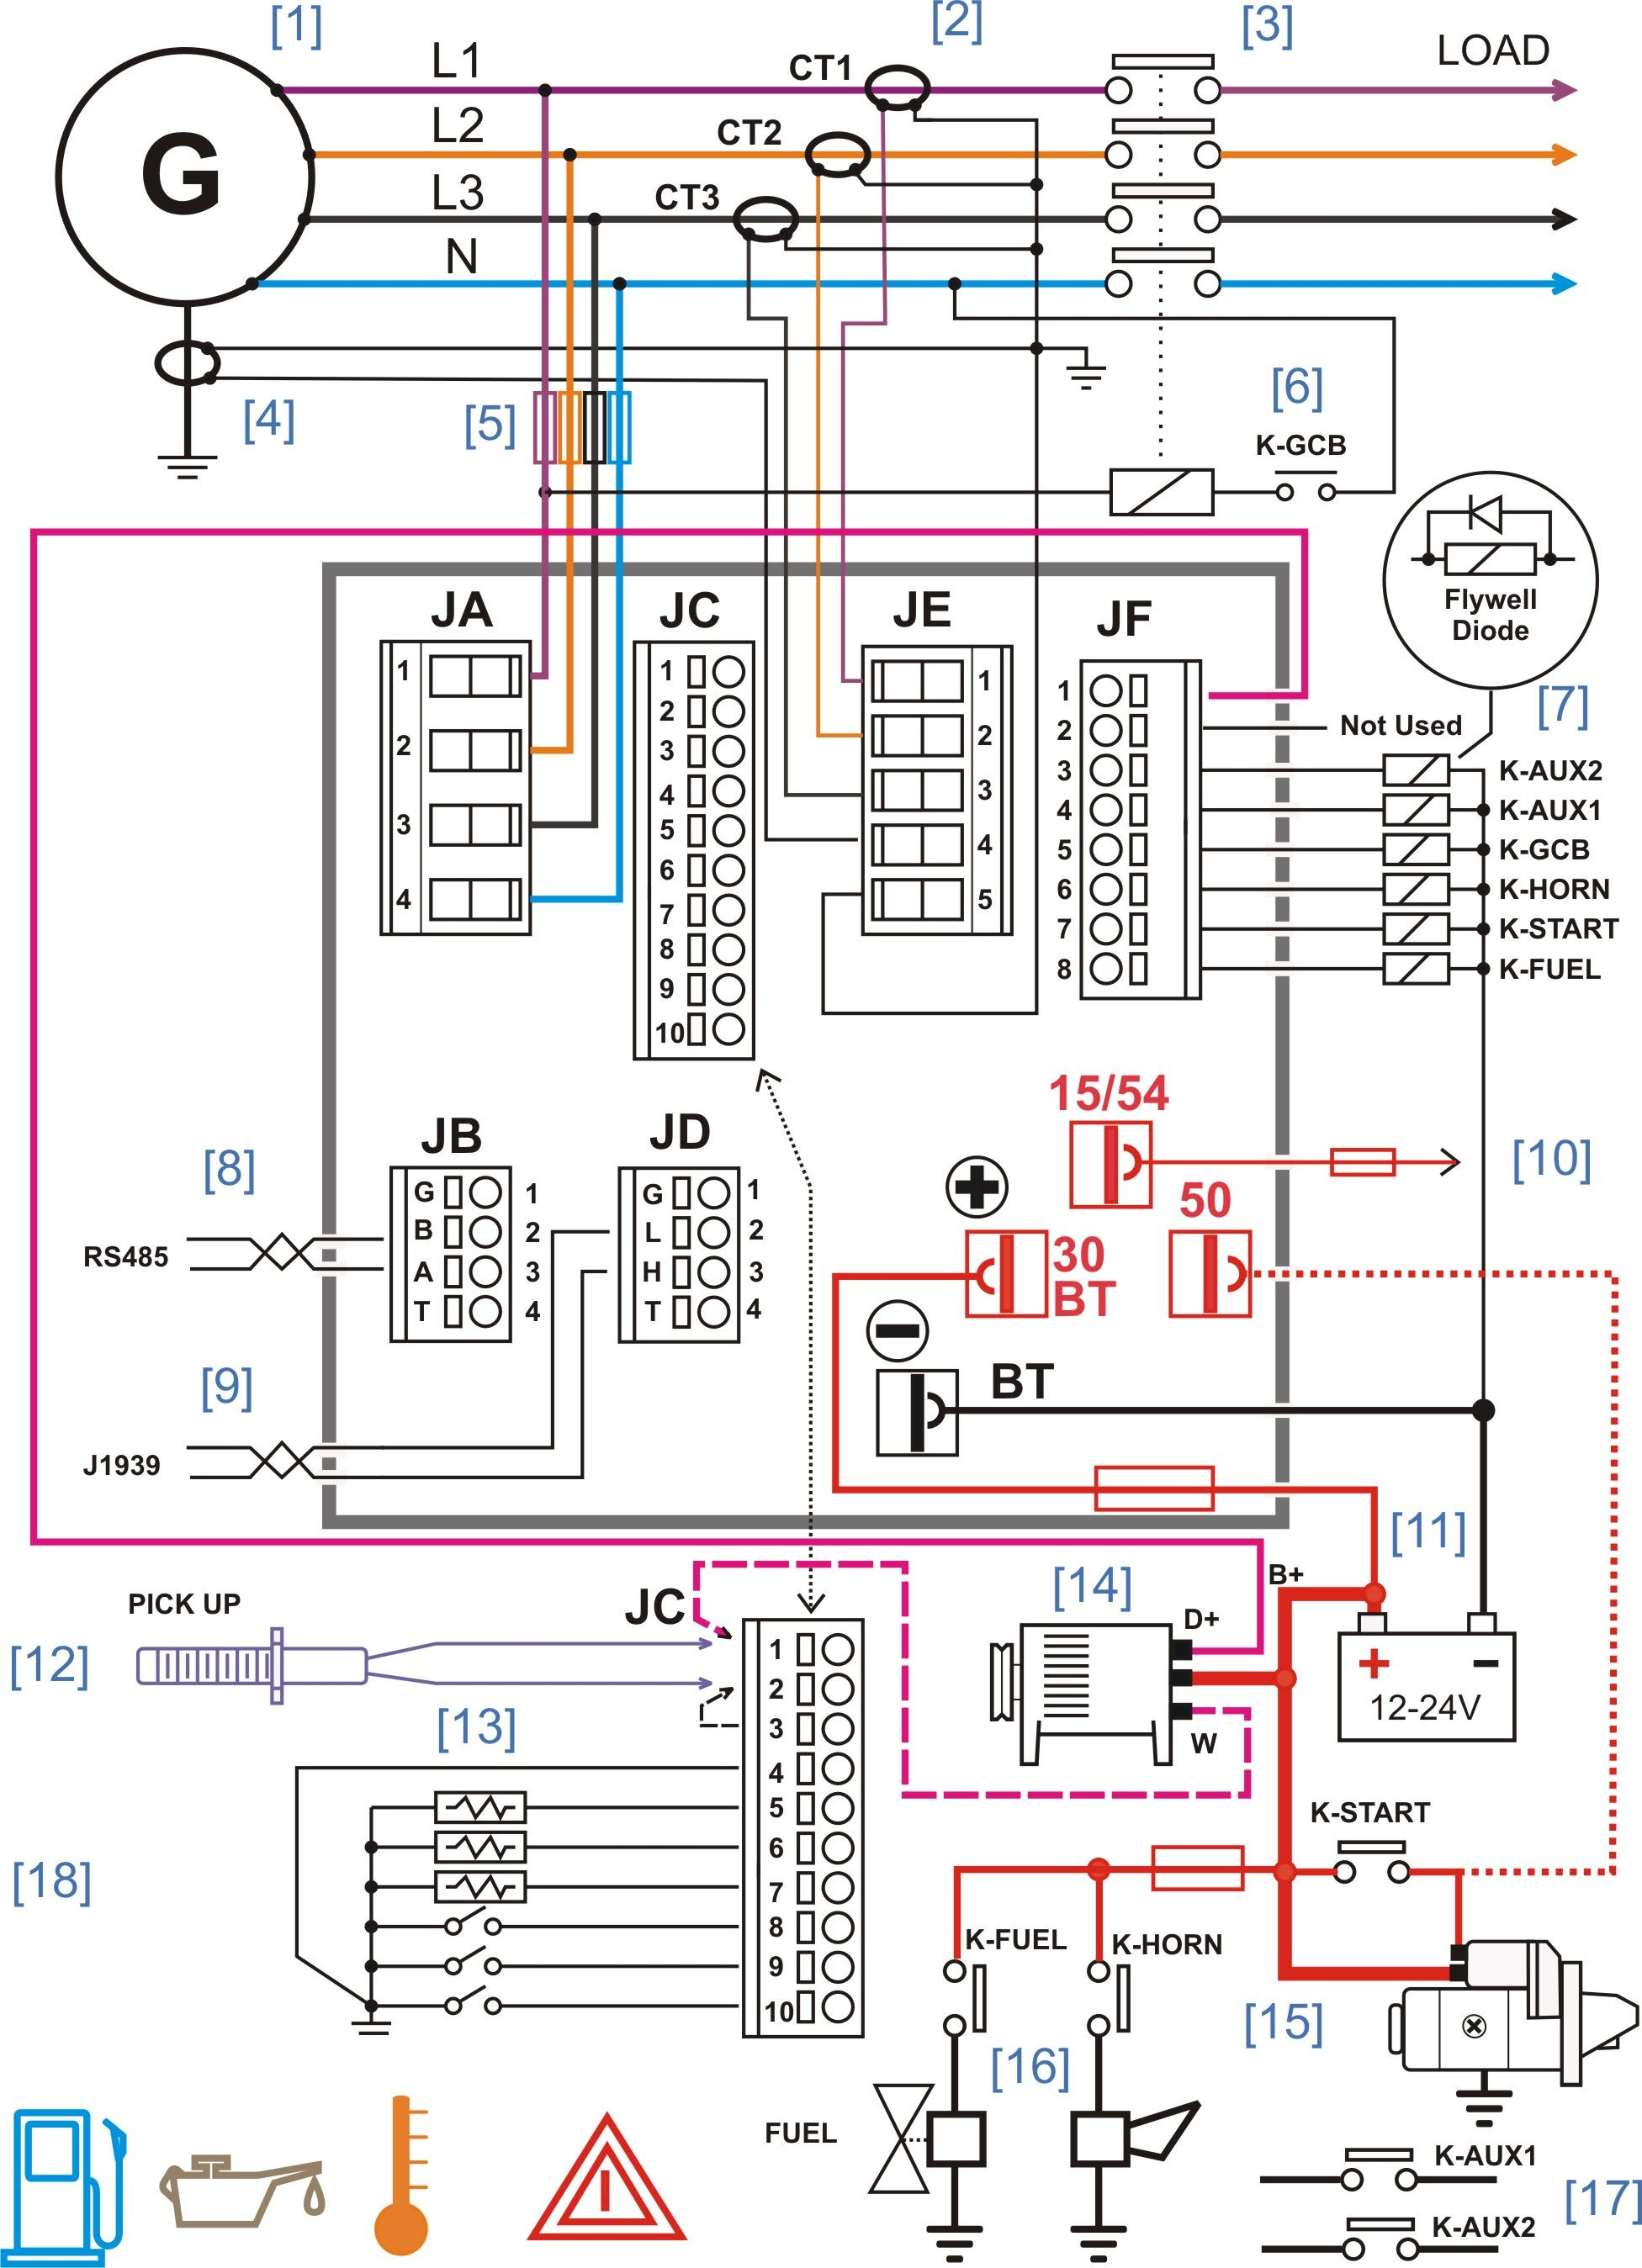 Circuit Diagram Maker Download - Wiring Diagrams Page